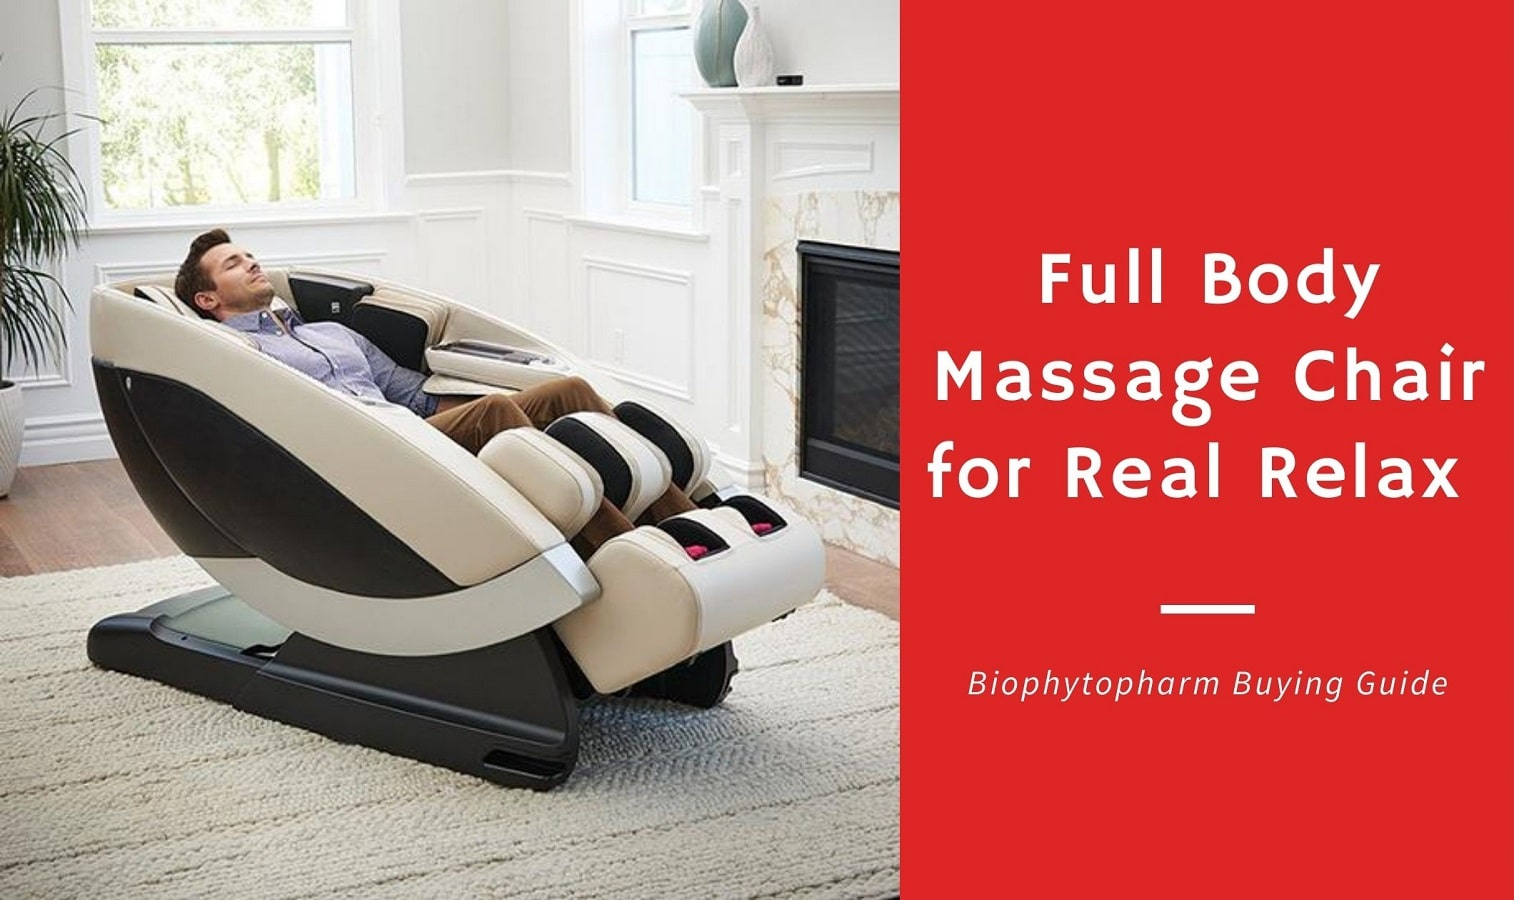 Full Body Massage Chair for Real Relax - Buying Guide